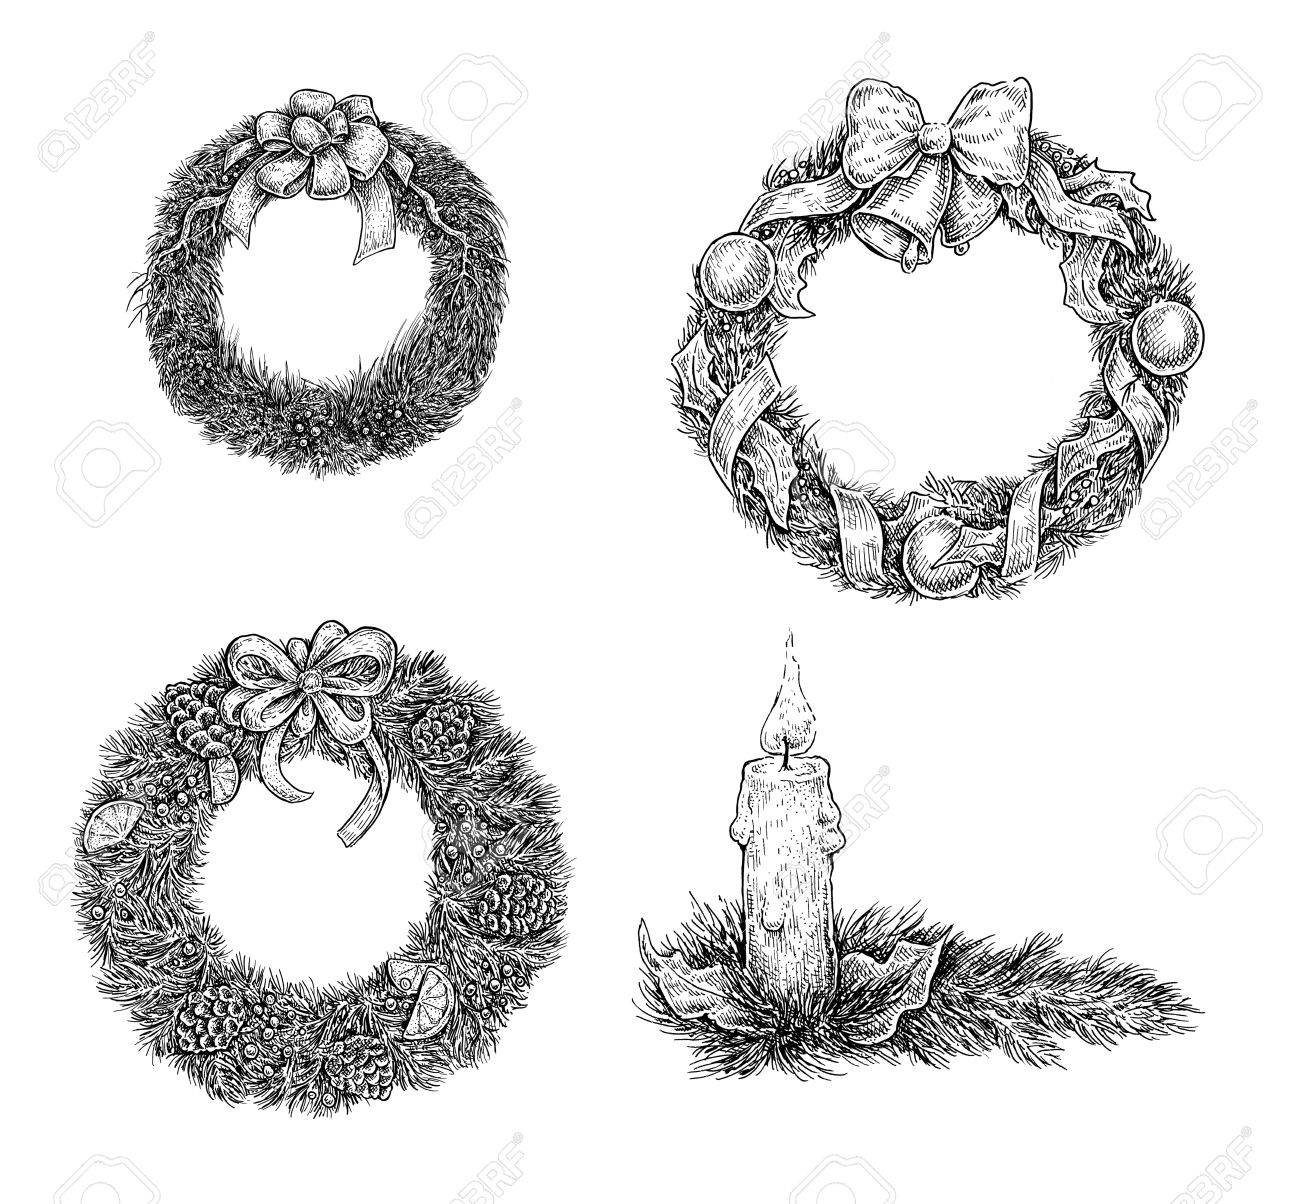 Drawings Of Christmas Wreaths.Set Of Christmas Design Elements Hand Draw Ink Xmas Wreaths